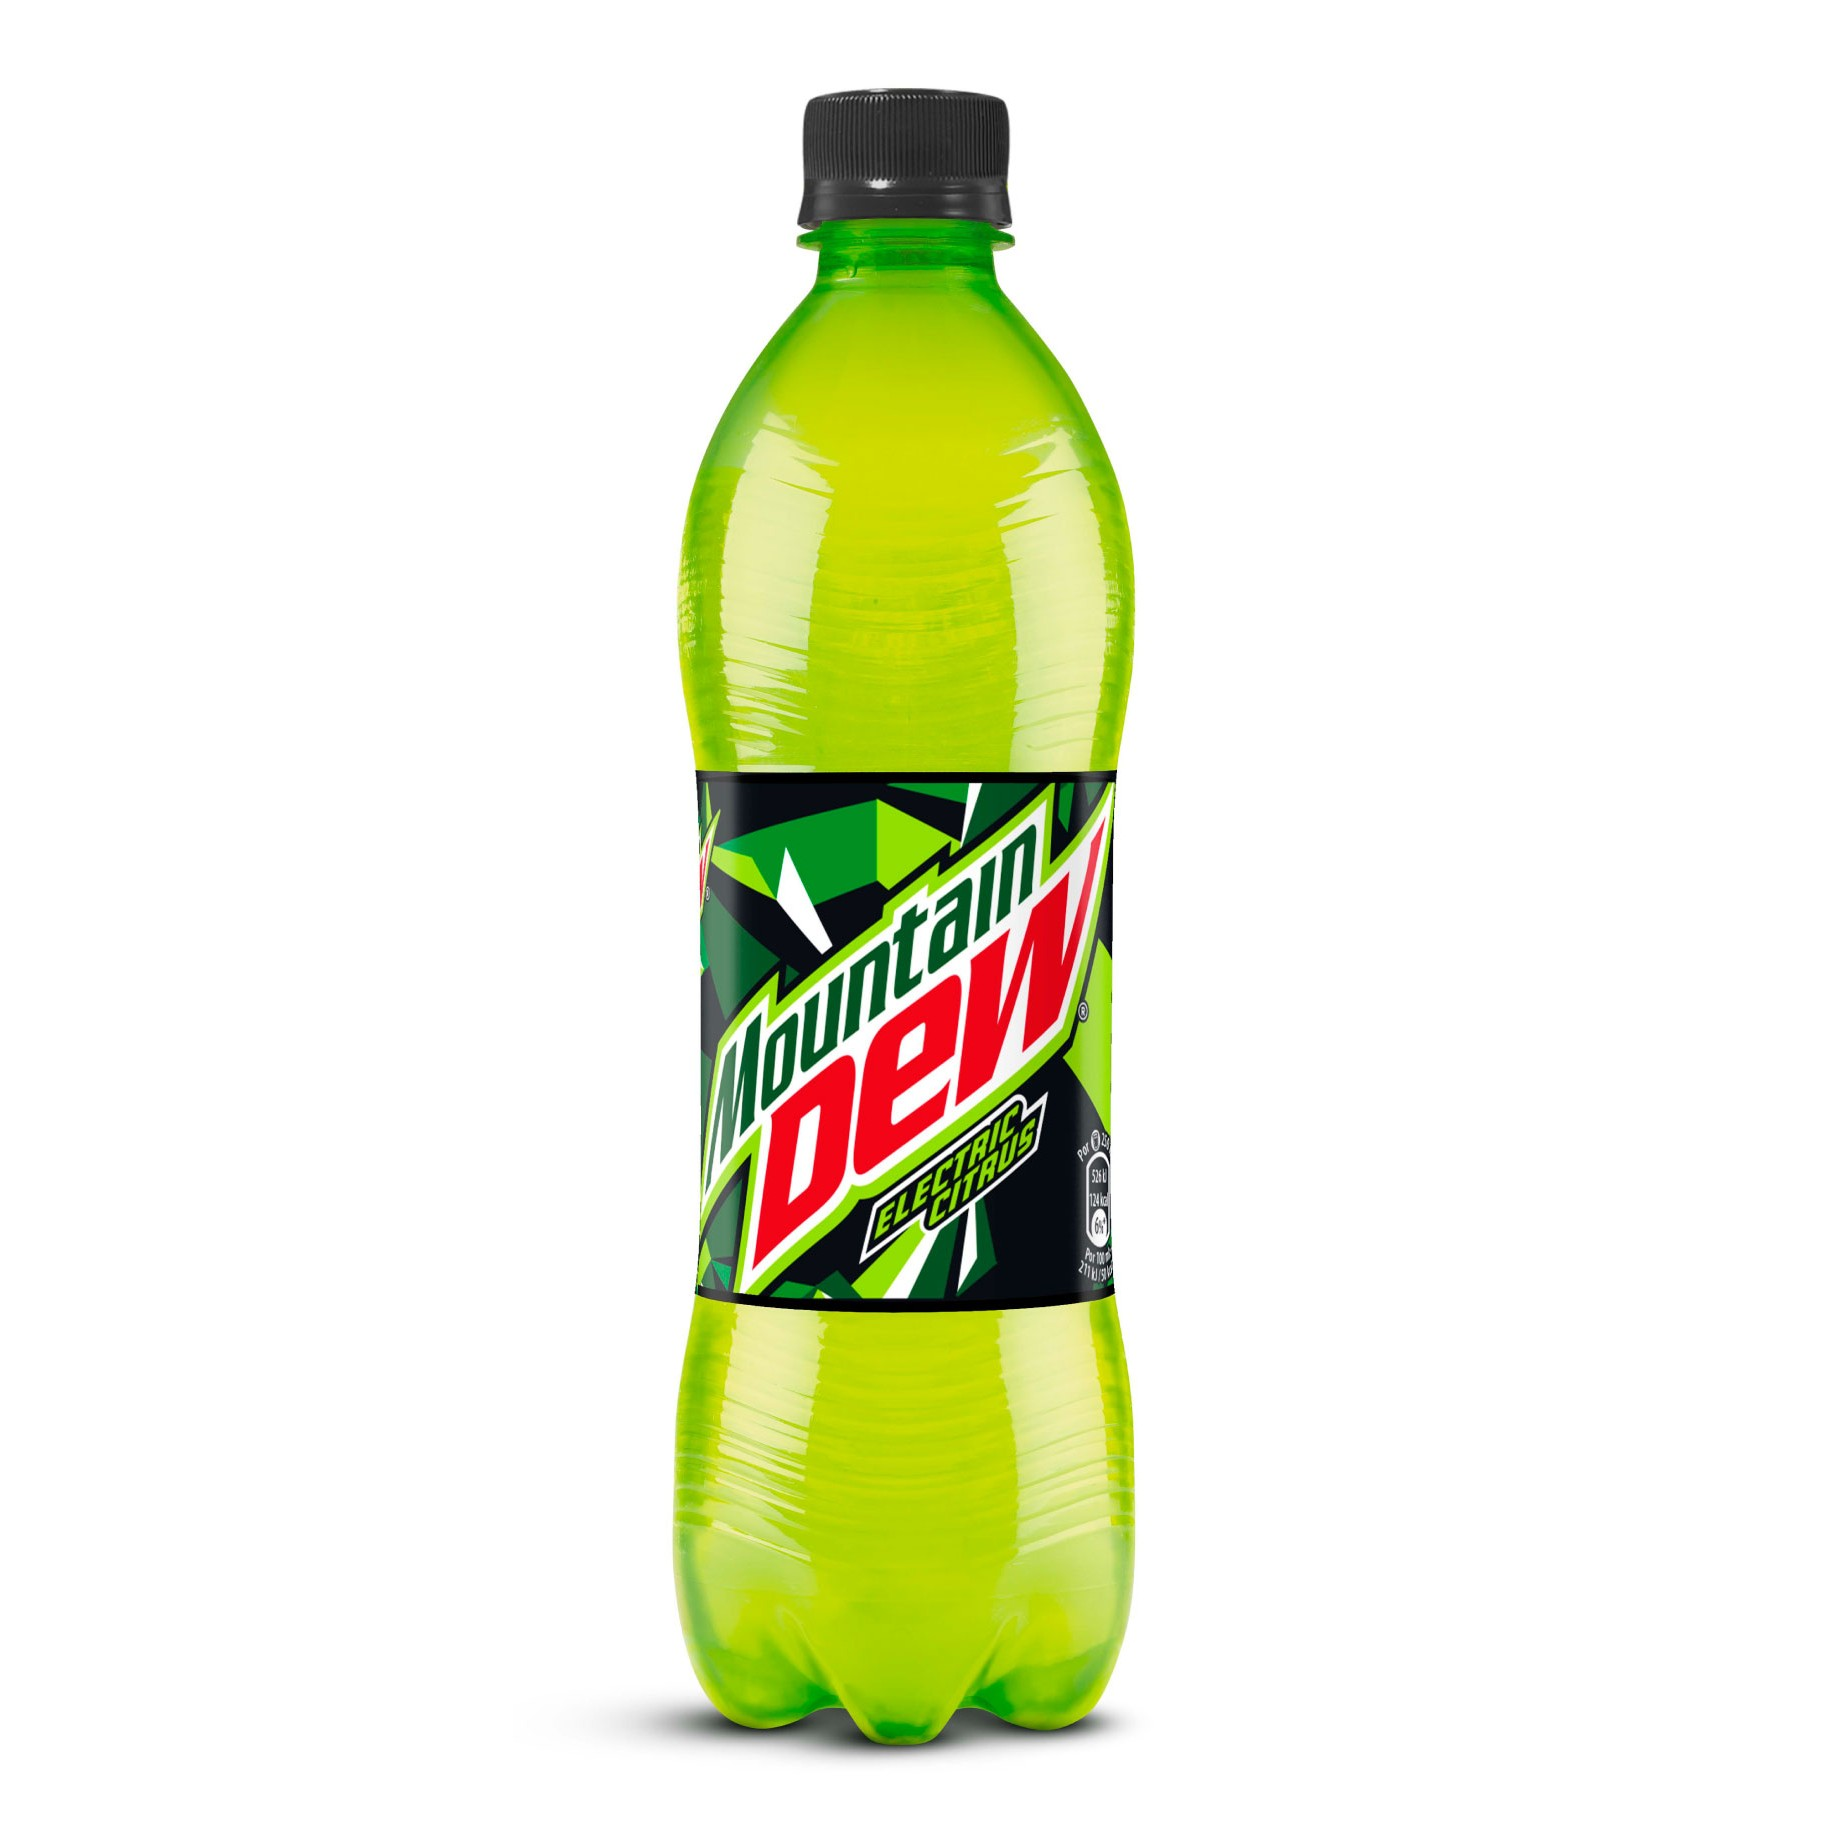 Mountain Dew energy refresco lima limon de 50cl. en botella